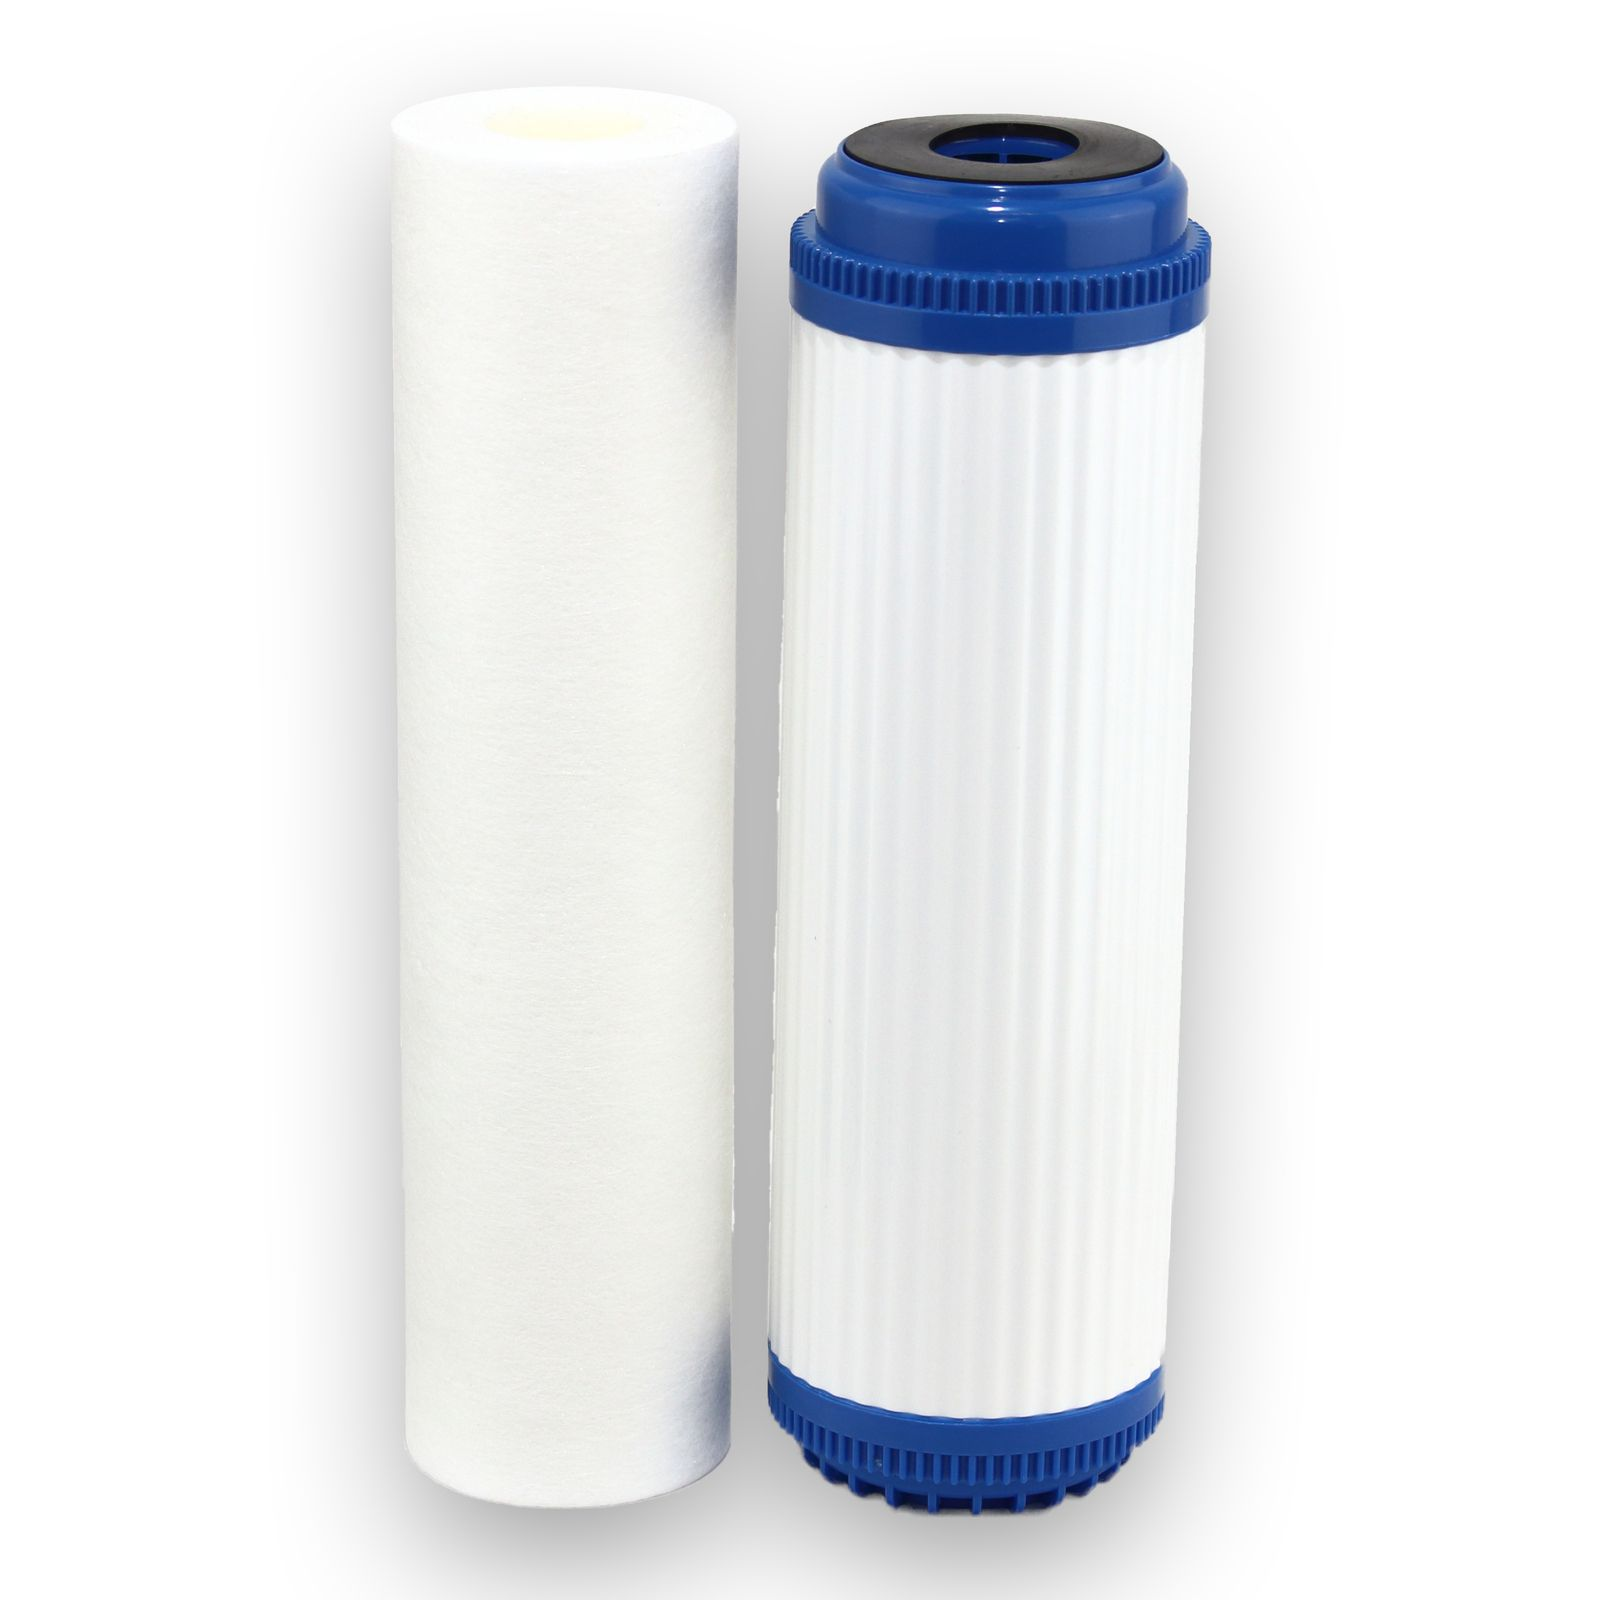 Uniflow Gac Silver Carbon Rainwater Filter Kit Rainwater